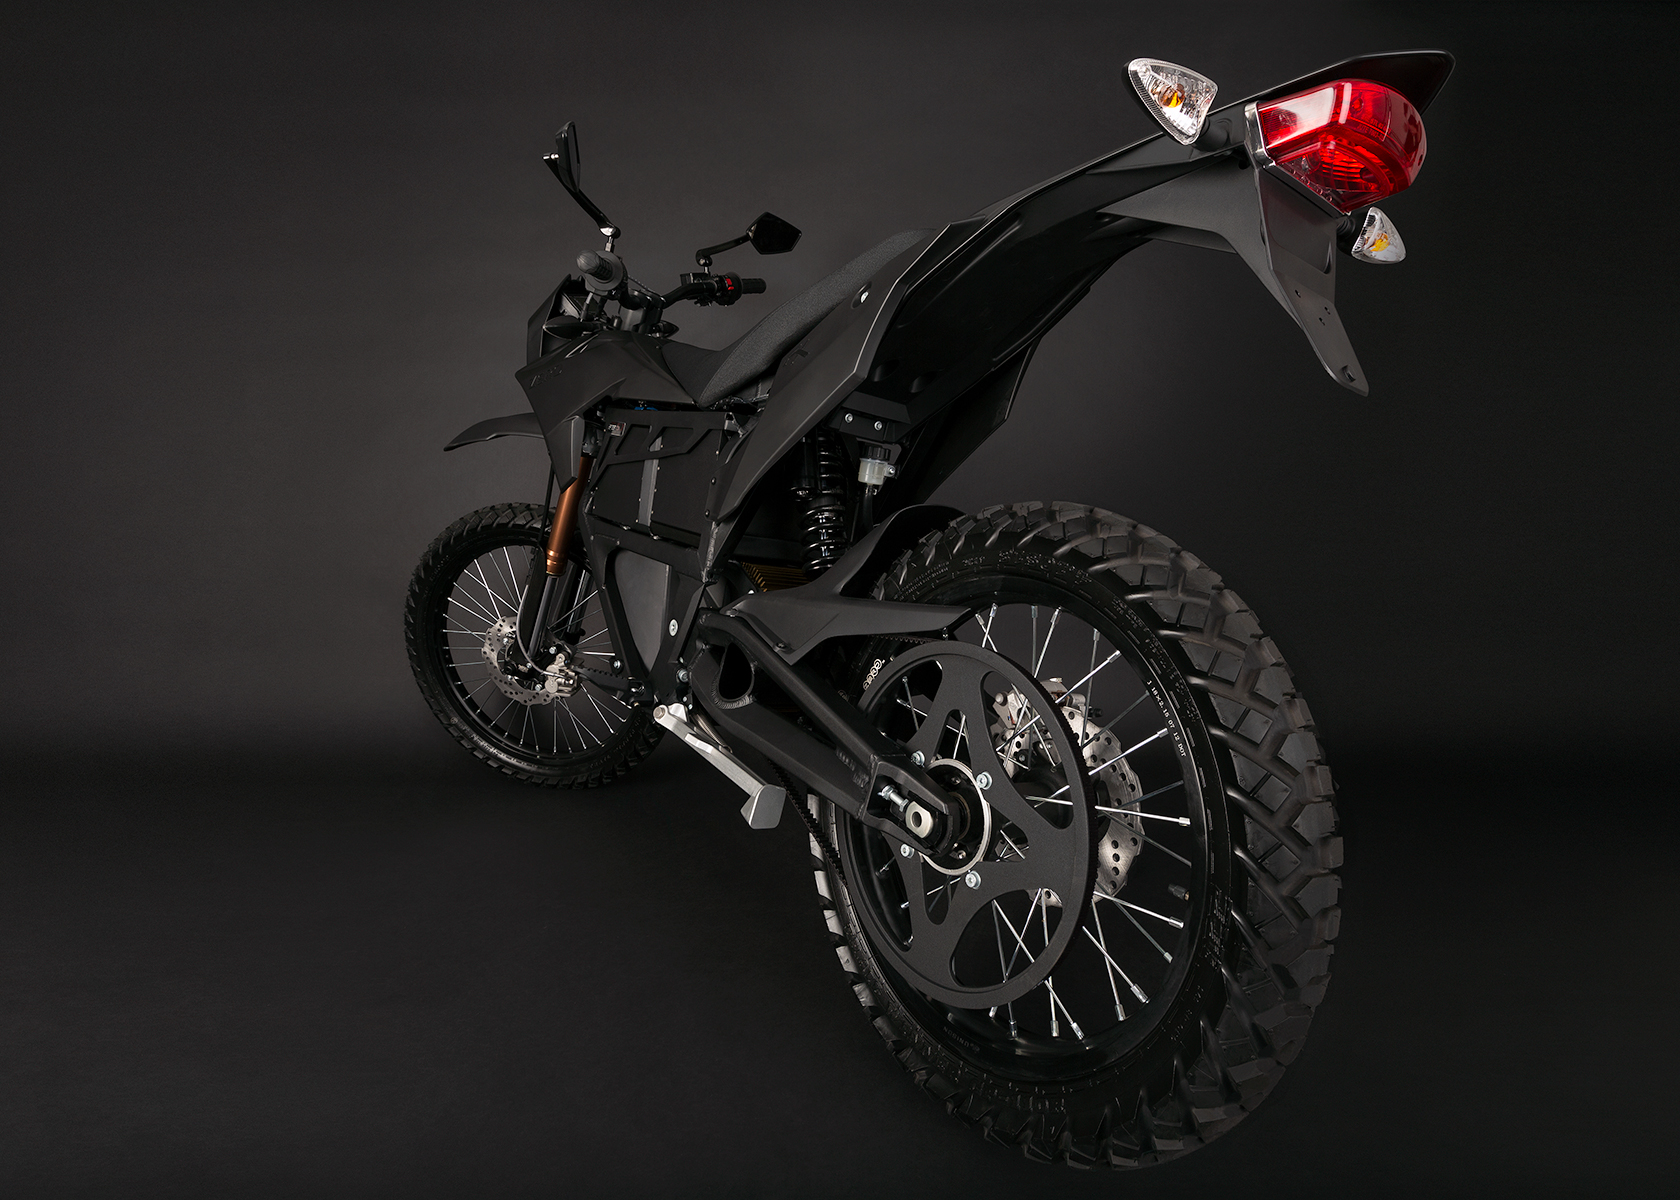 2013 Zero FX Electric Motorcycle: Black, Rear View